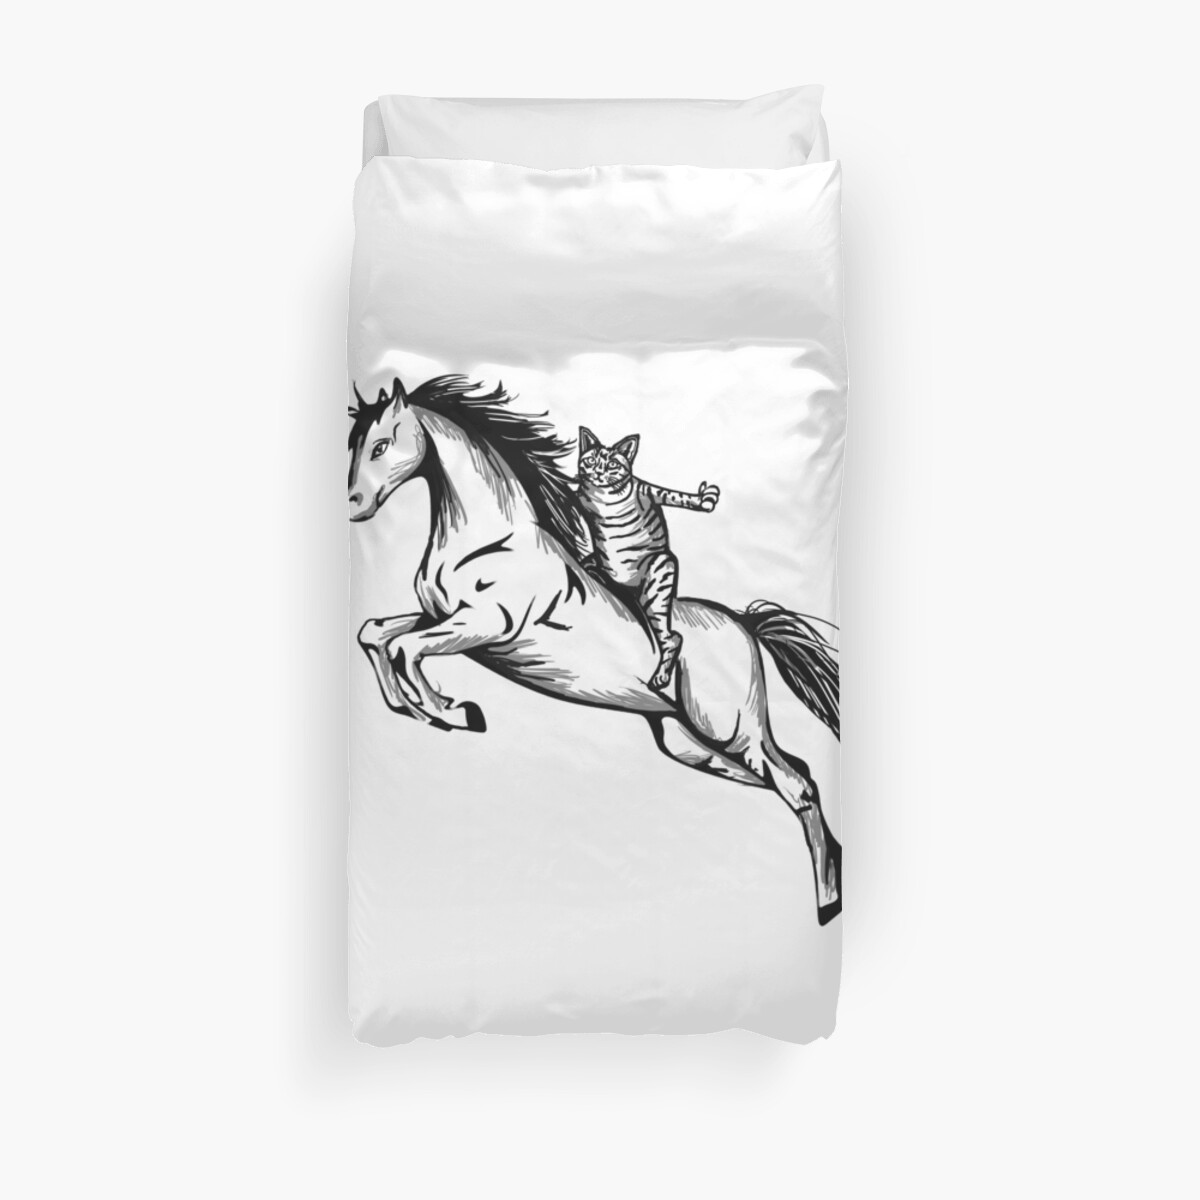 Awesome Cat Riding Unicorn Design Duvet Covers By Graphicrhythm